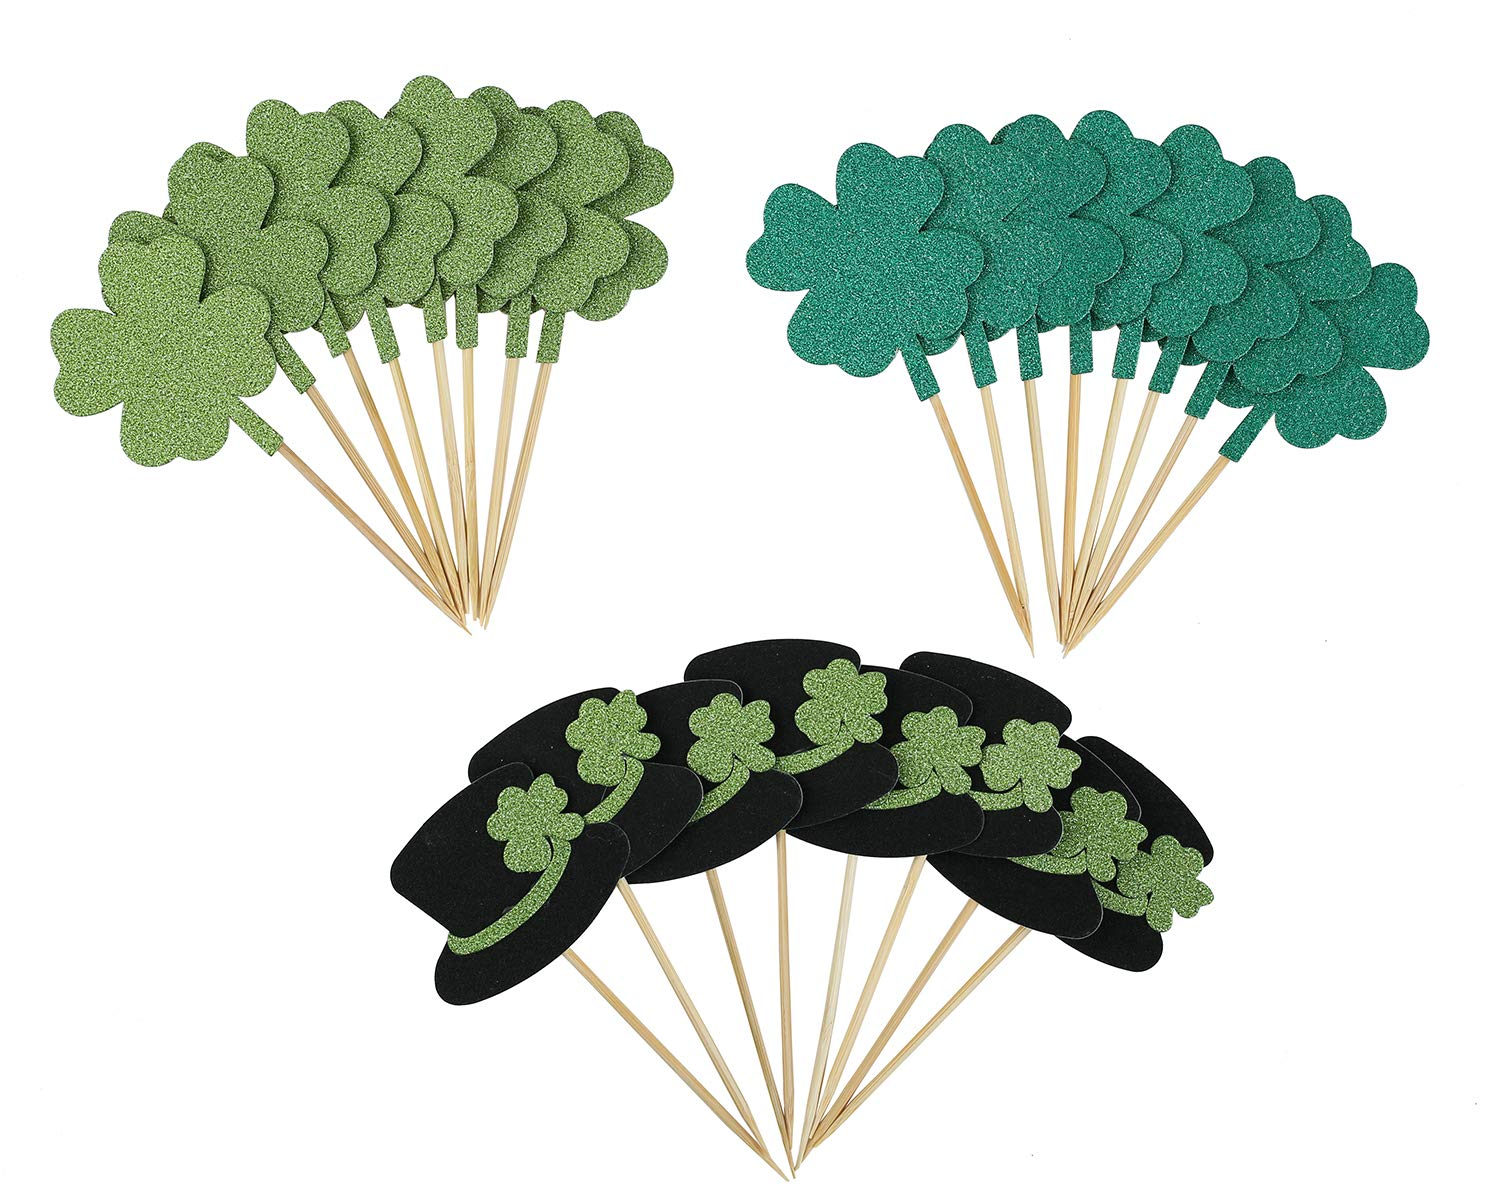 St.Patrick's Day Cupcake Toppers Glitter Clover Leprechaun Hats - Shamrock Saint Paddy's Day Party Supplies Cake Picks Decorations, Set of 24